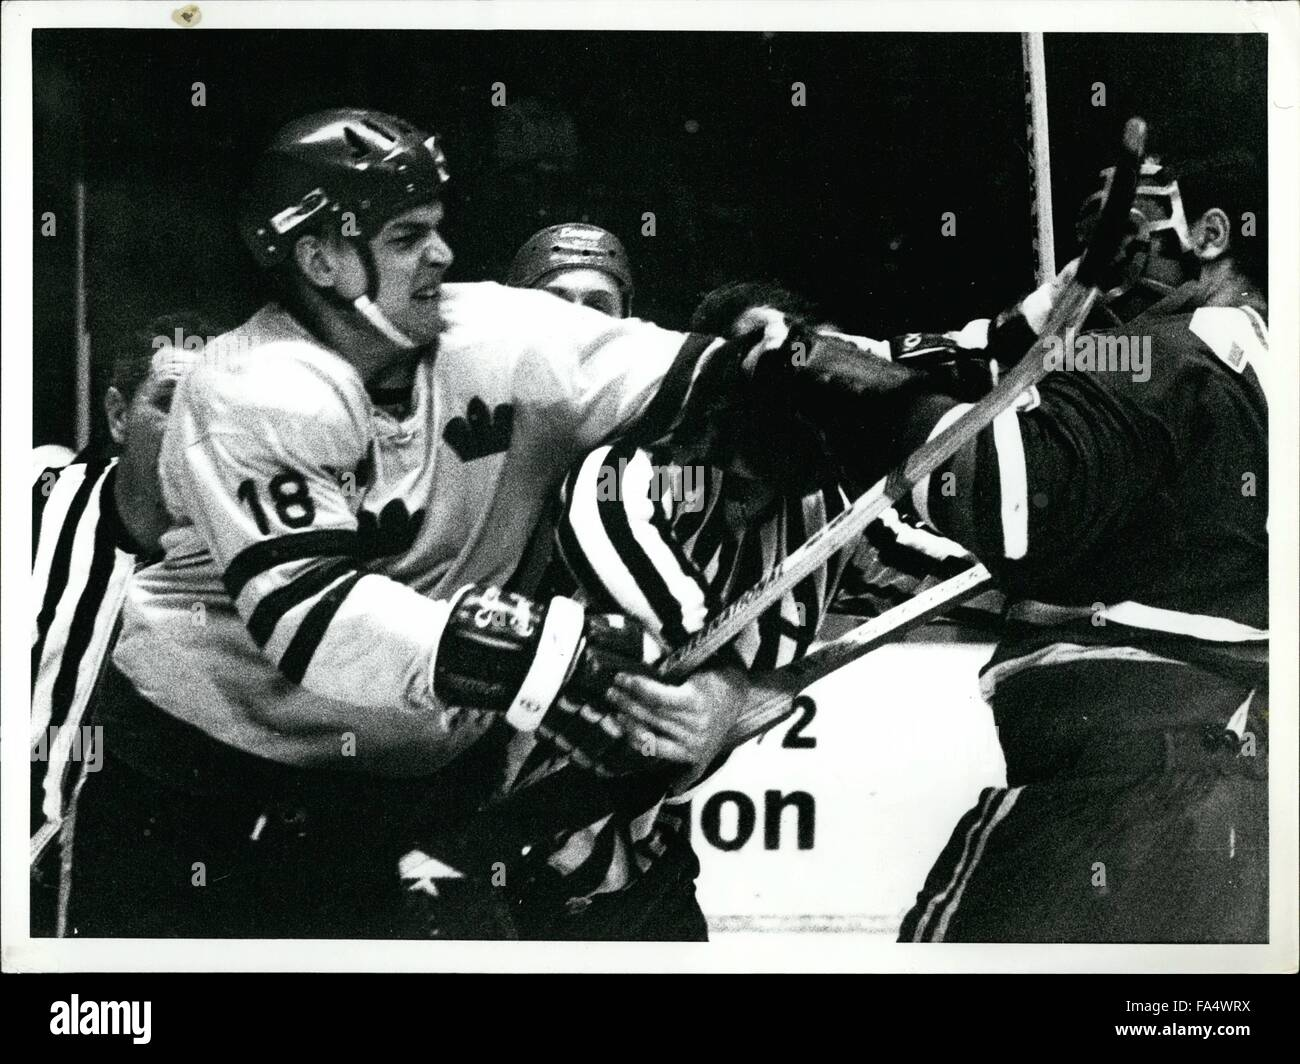 1970 - Ice Hockey world championship stockholm 1970 USSR Sweden: A close up picture of NR 18 Bjorn Palmqvist, the Stock Photo